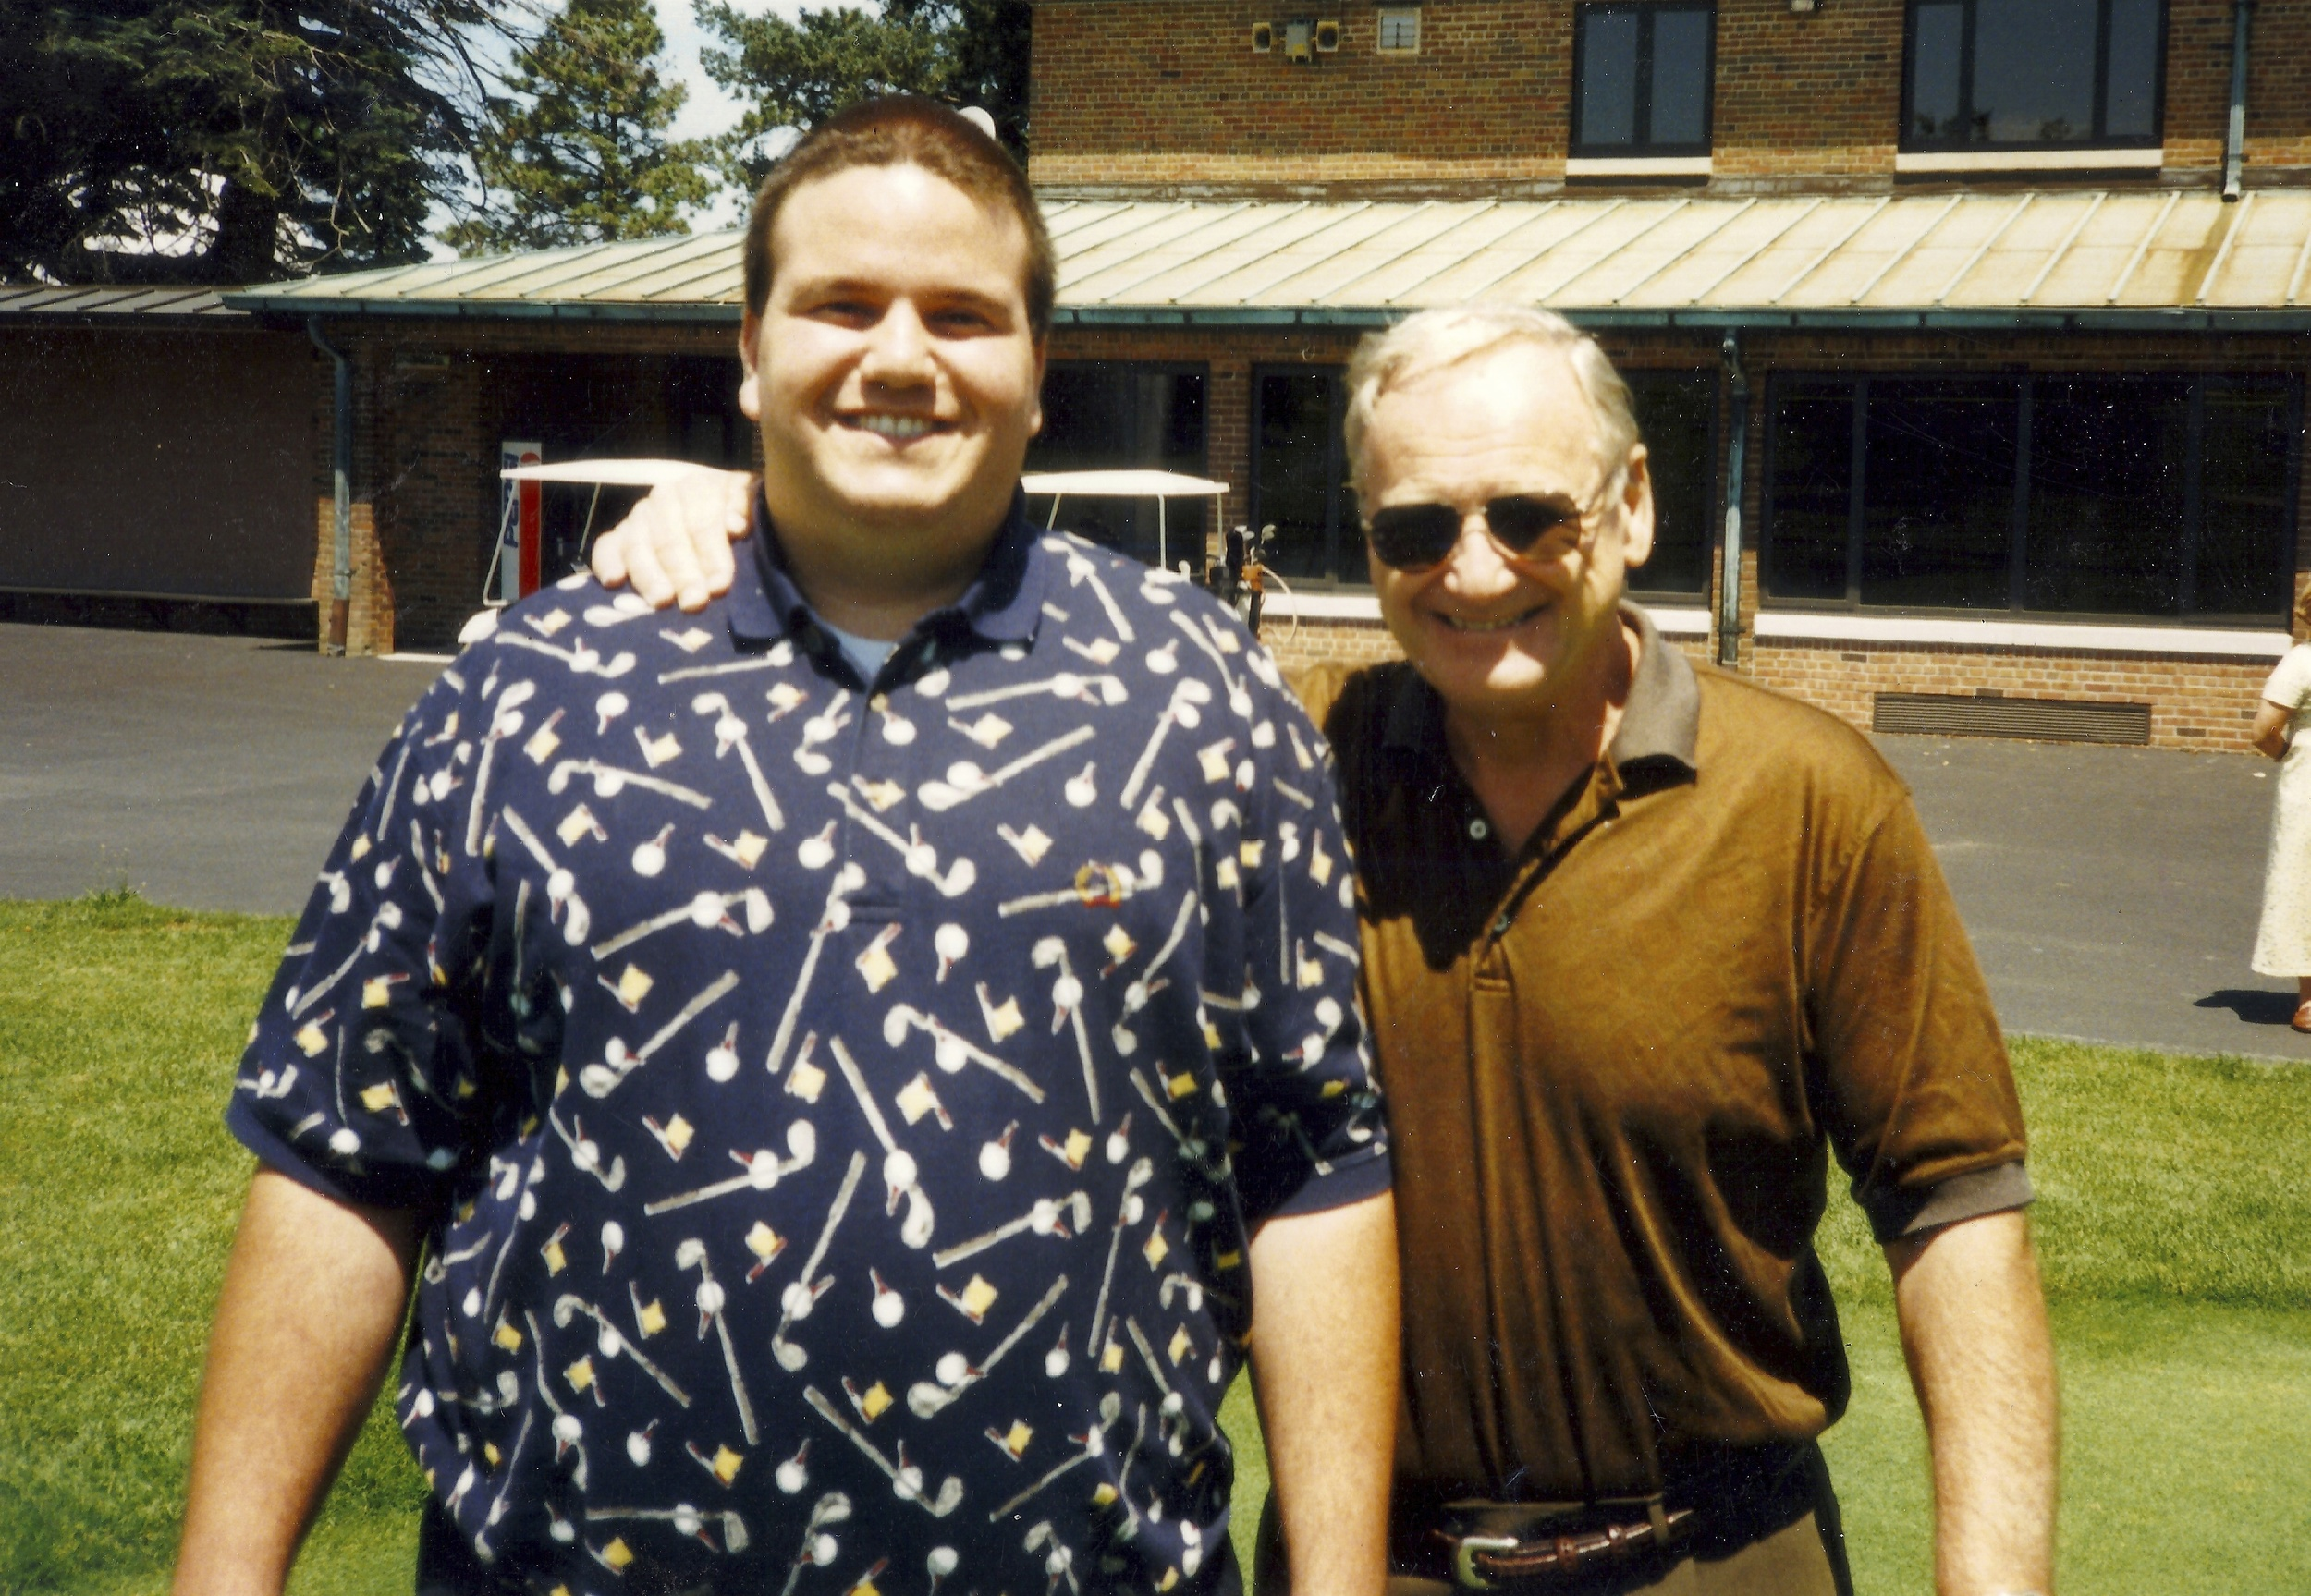 July 1998 - Best birthday present I ever received... interviewed Bo for TV50 and spent about a half hour walking The U Course with him.